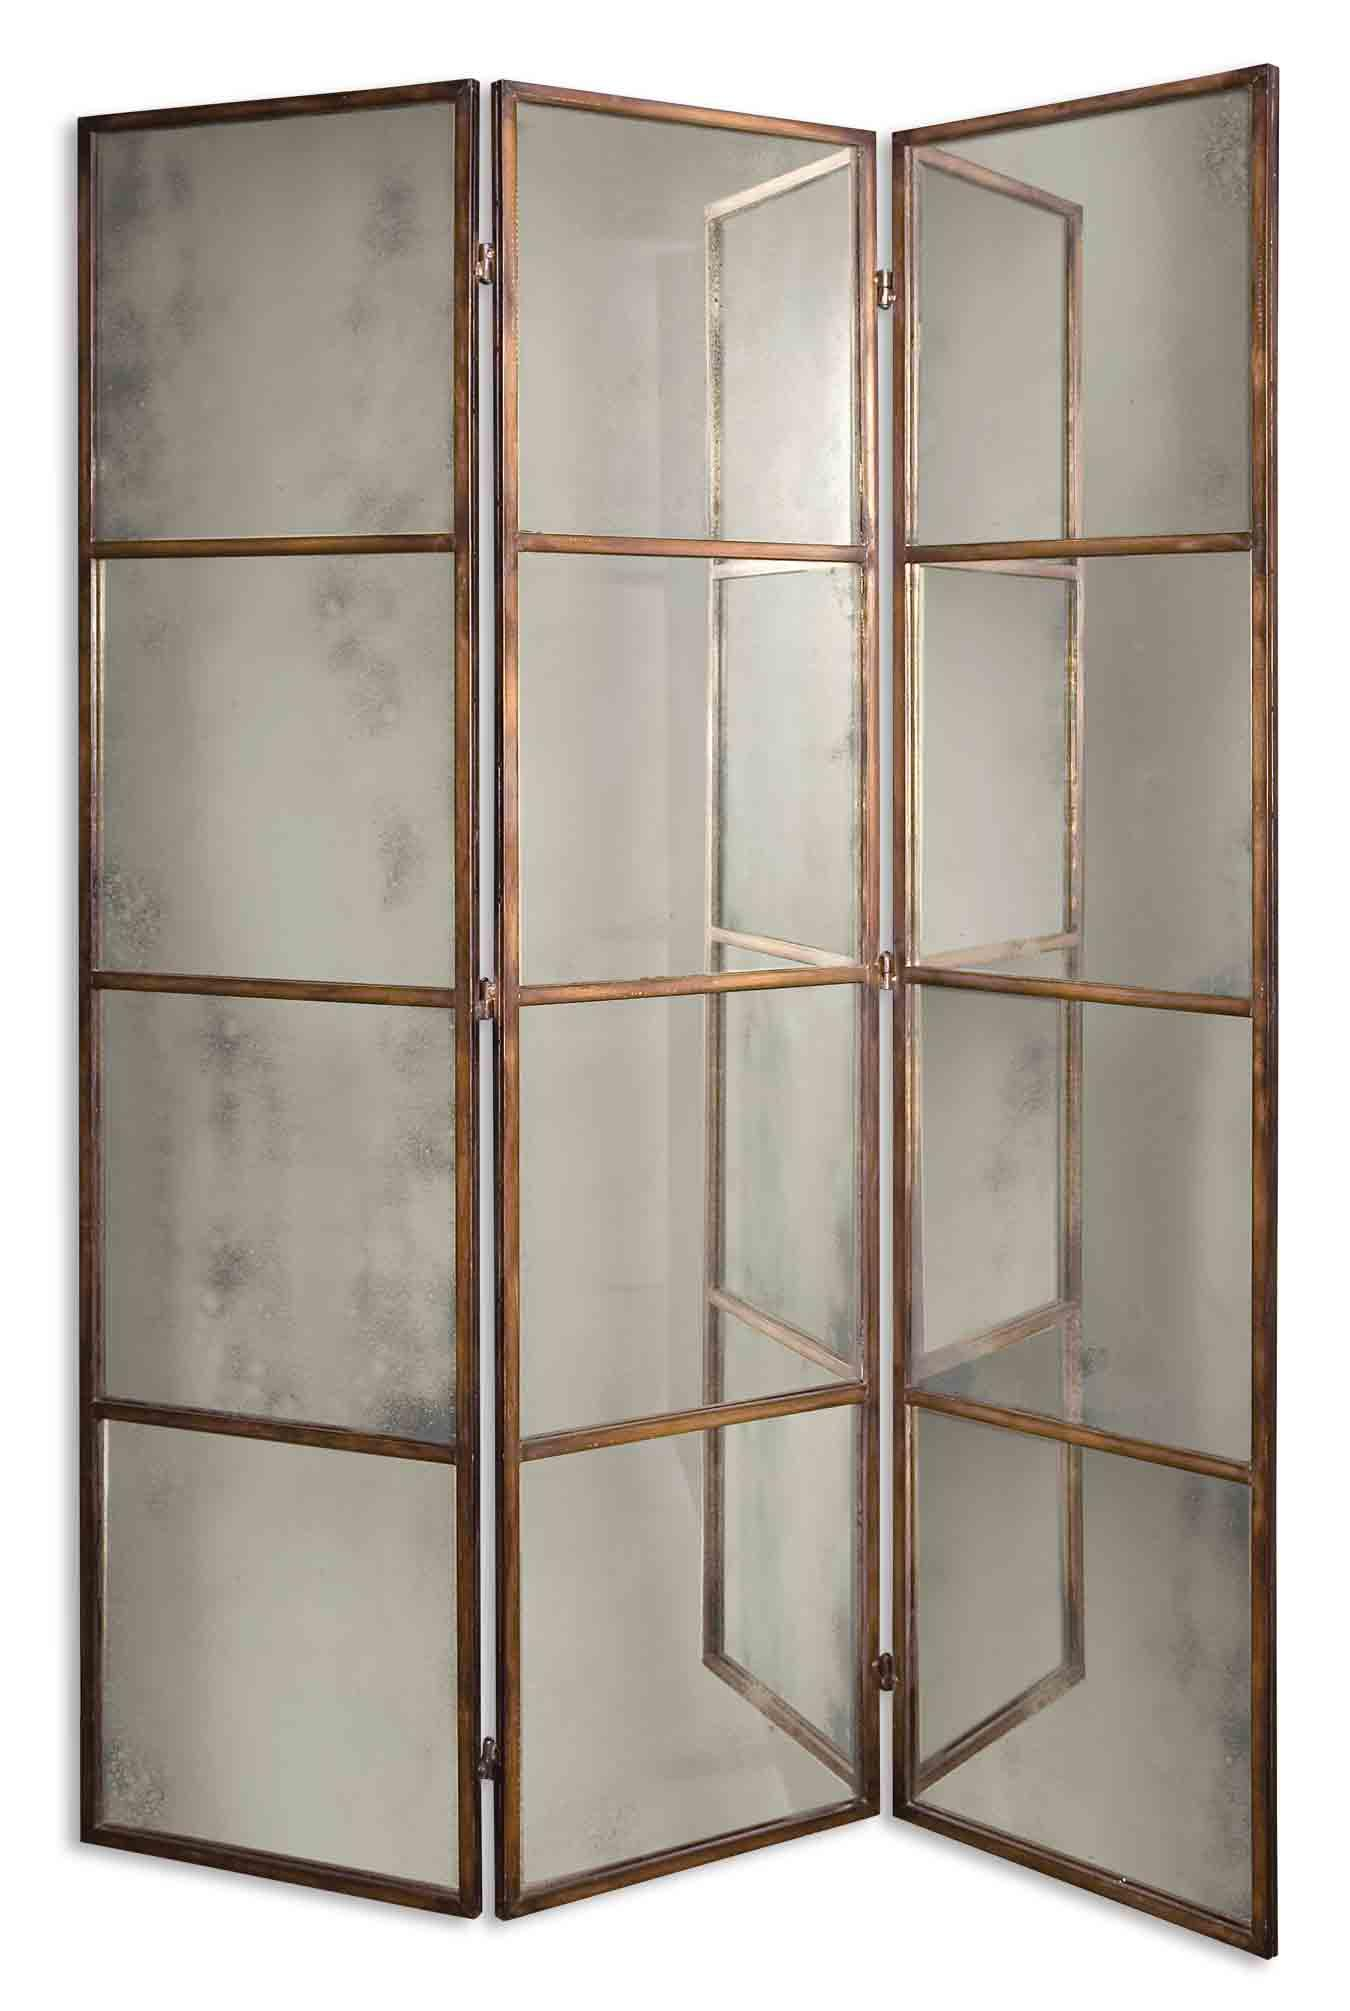 Uttermost Mirrors Avidan 3 Panel Screen - Item Number: 13364 P